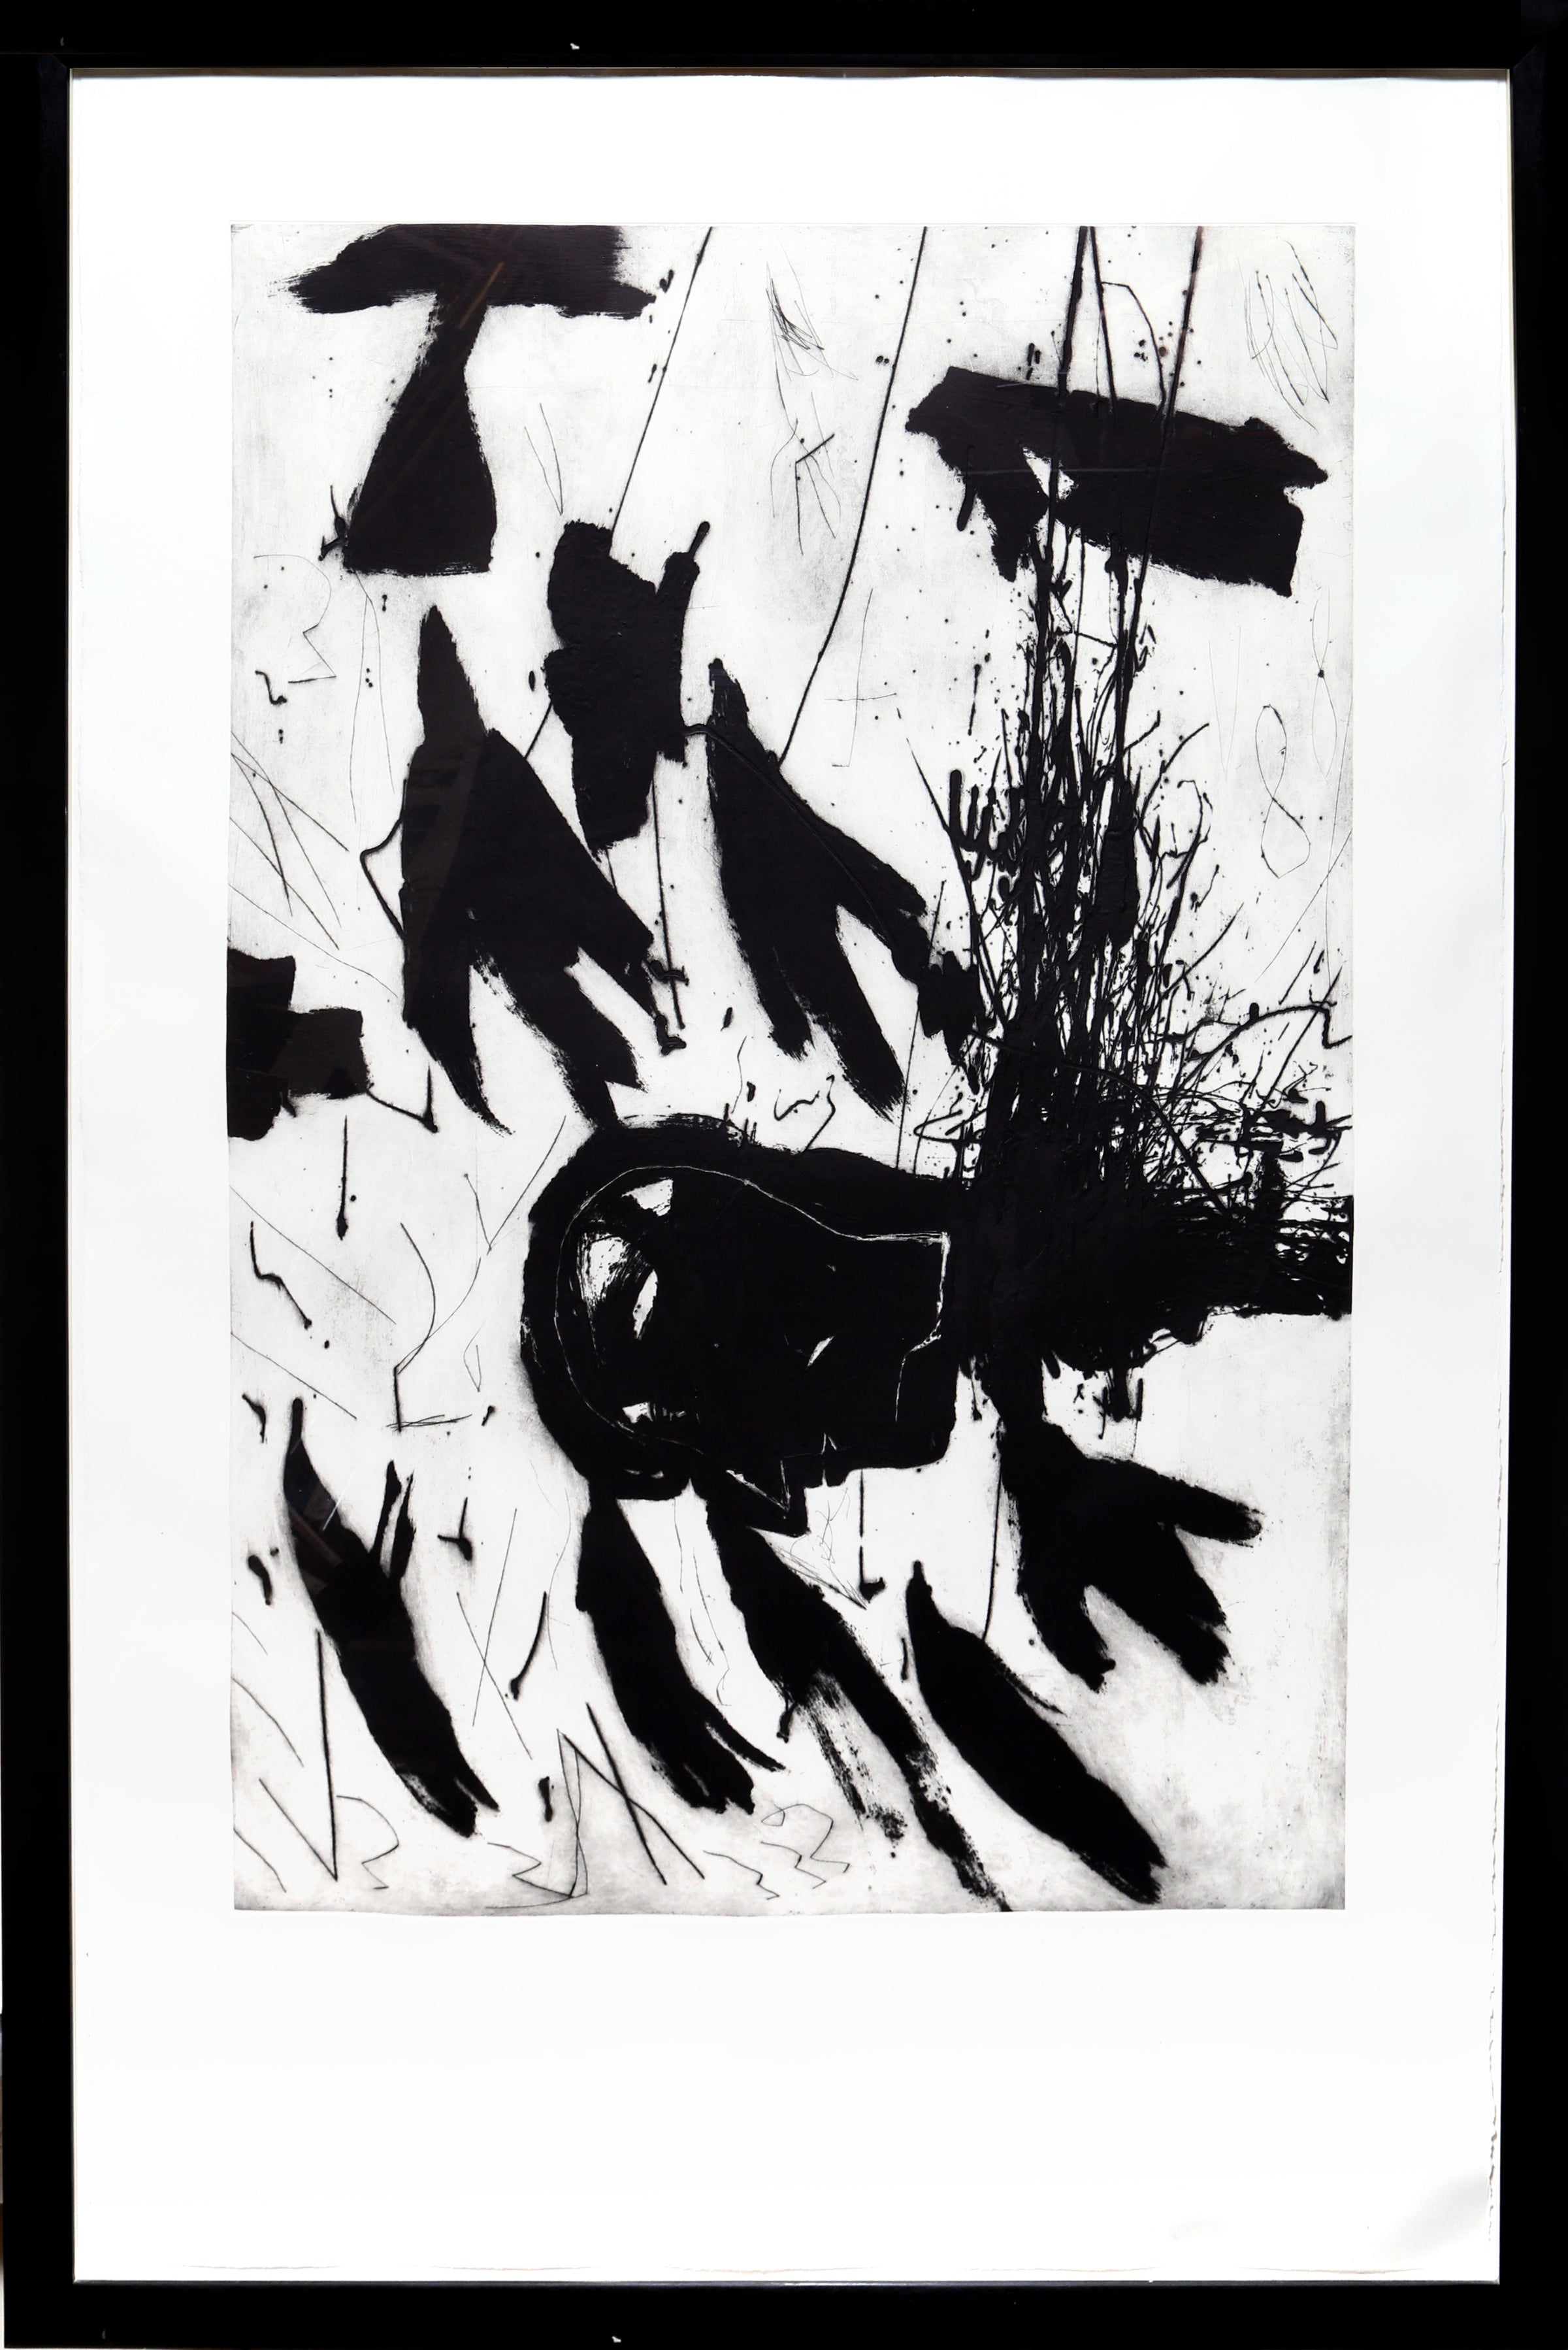 Mimmo Paladino, Sirene - Triptych No. 3 Etching - RoGallery